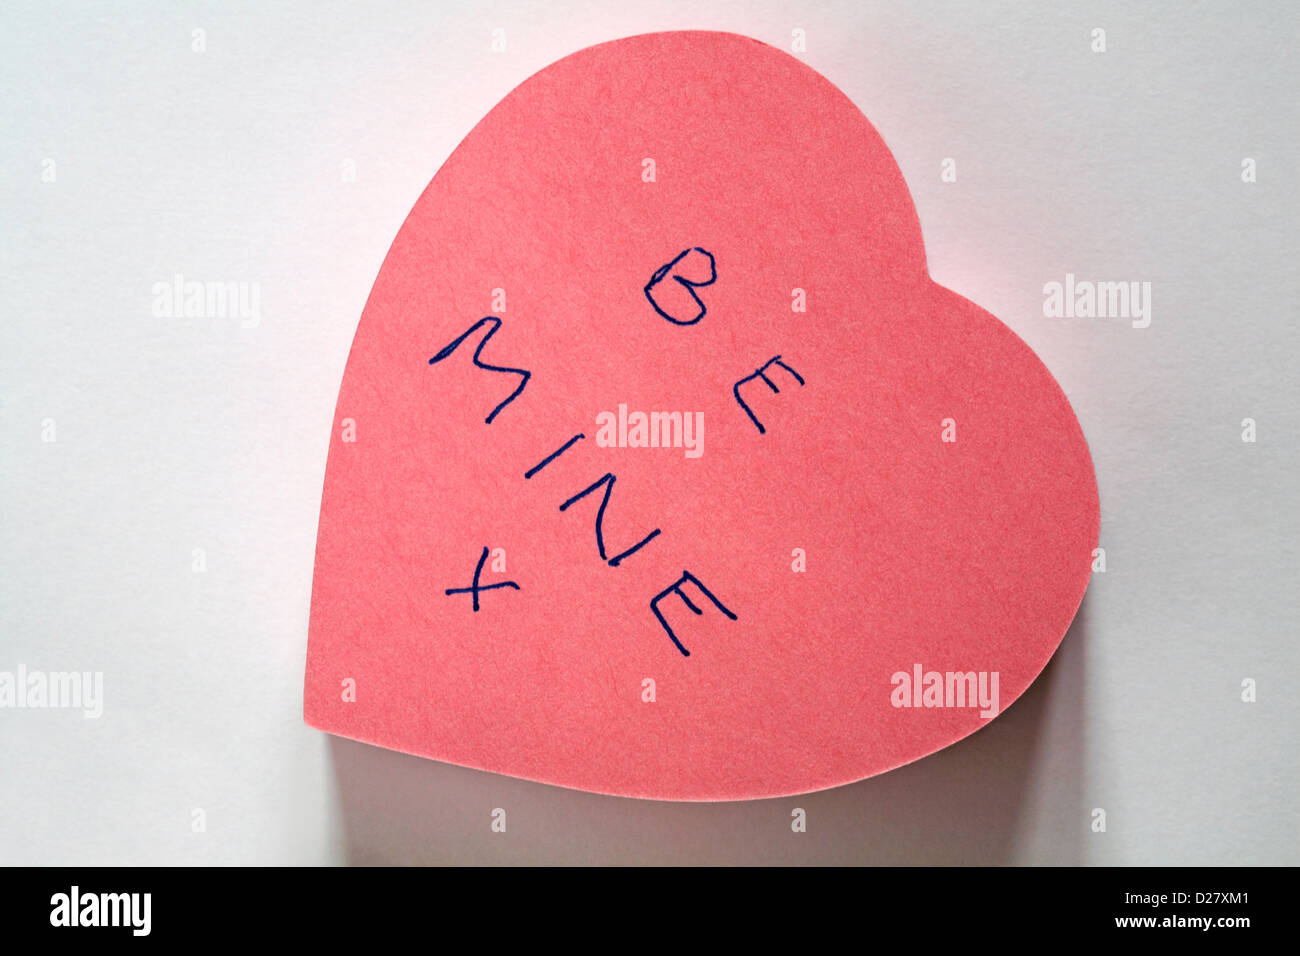 Be mine x message written on pink heart shaped post it note pad isolated on white background Stock Photo